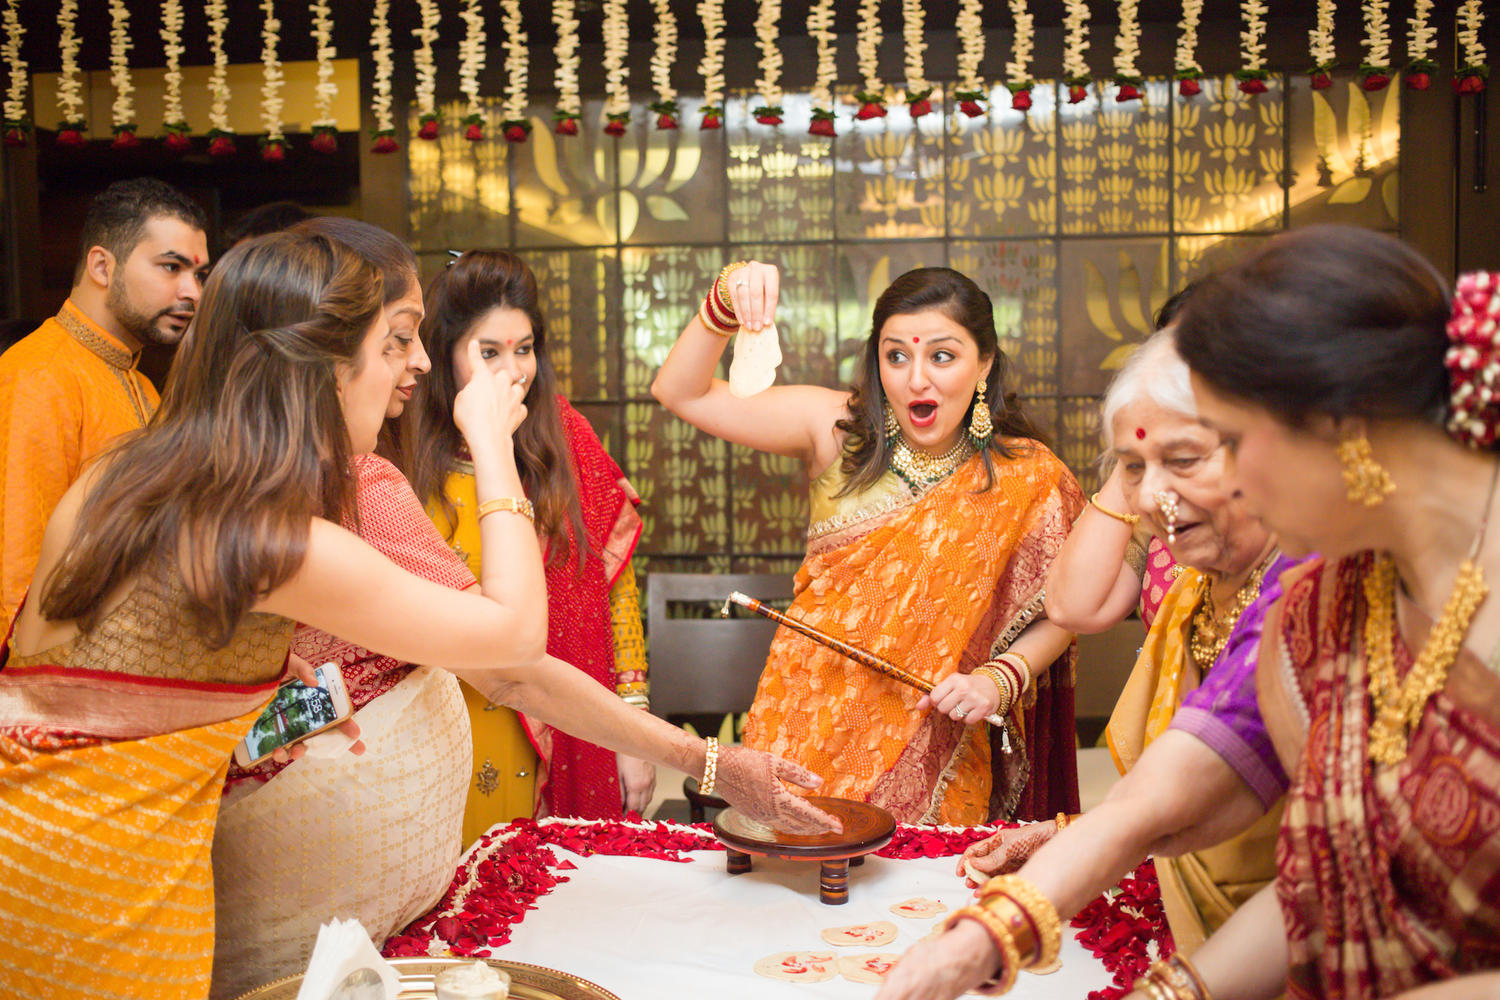 Candid moments at a Gujarati Haldi ceremony